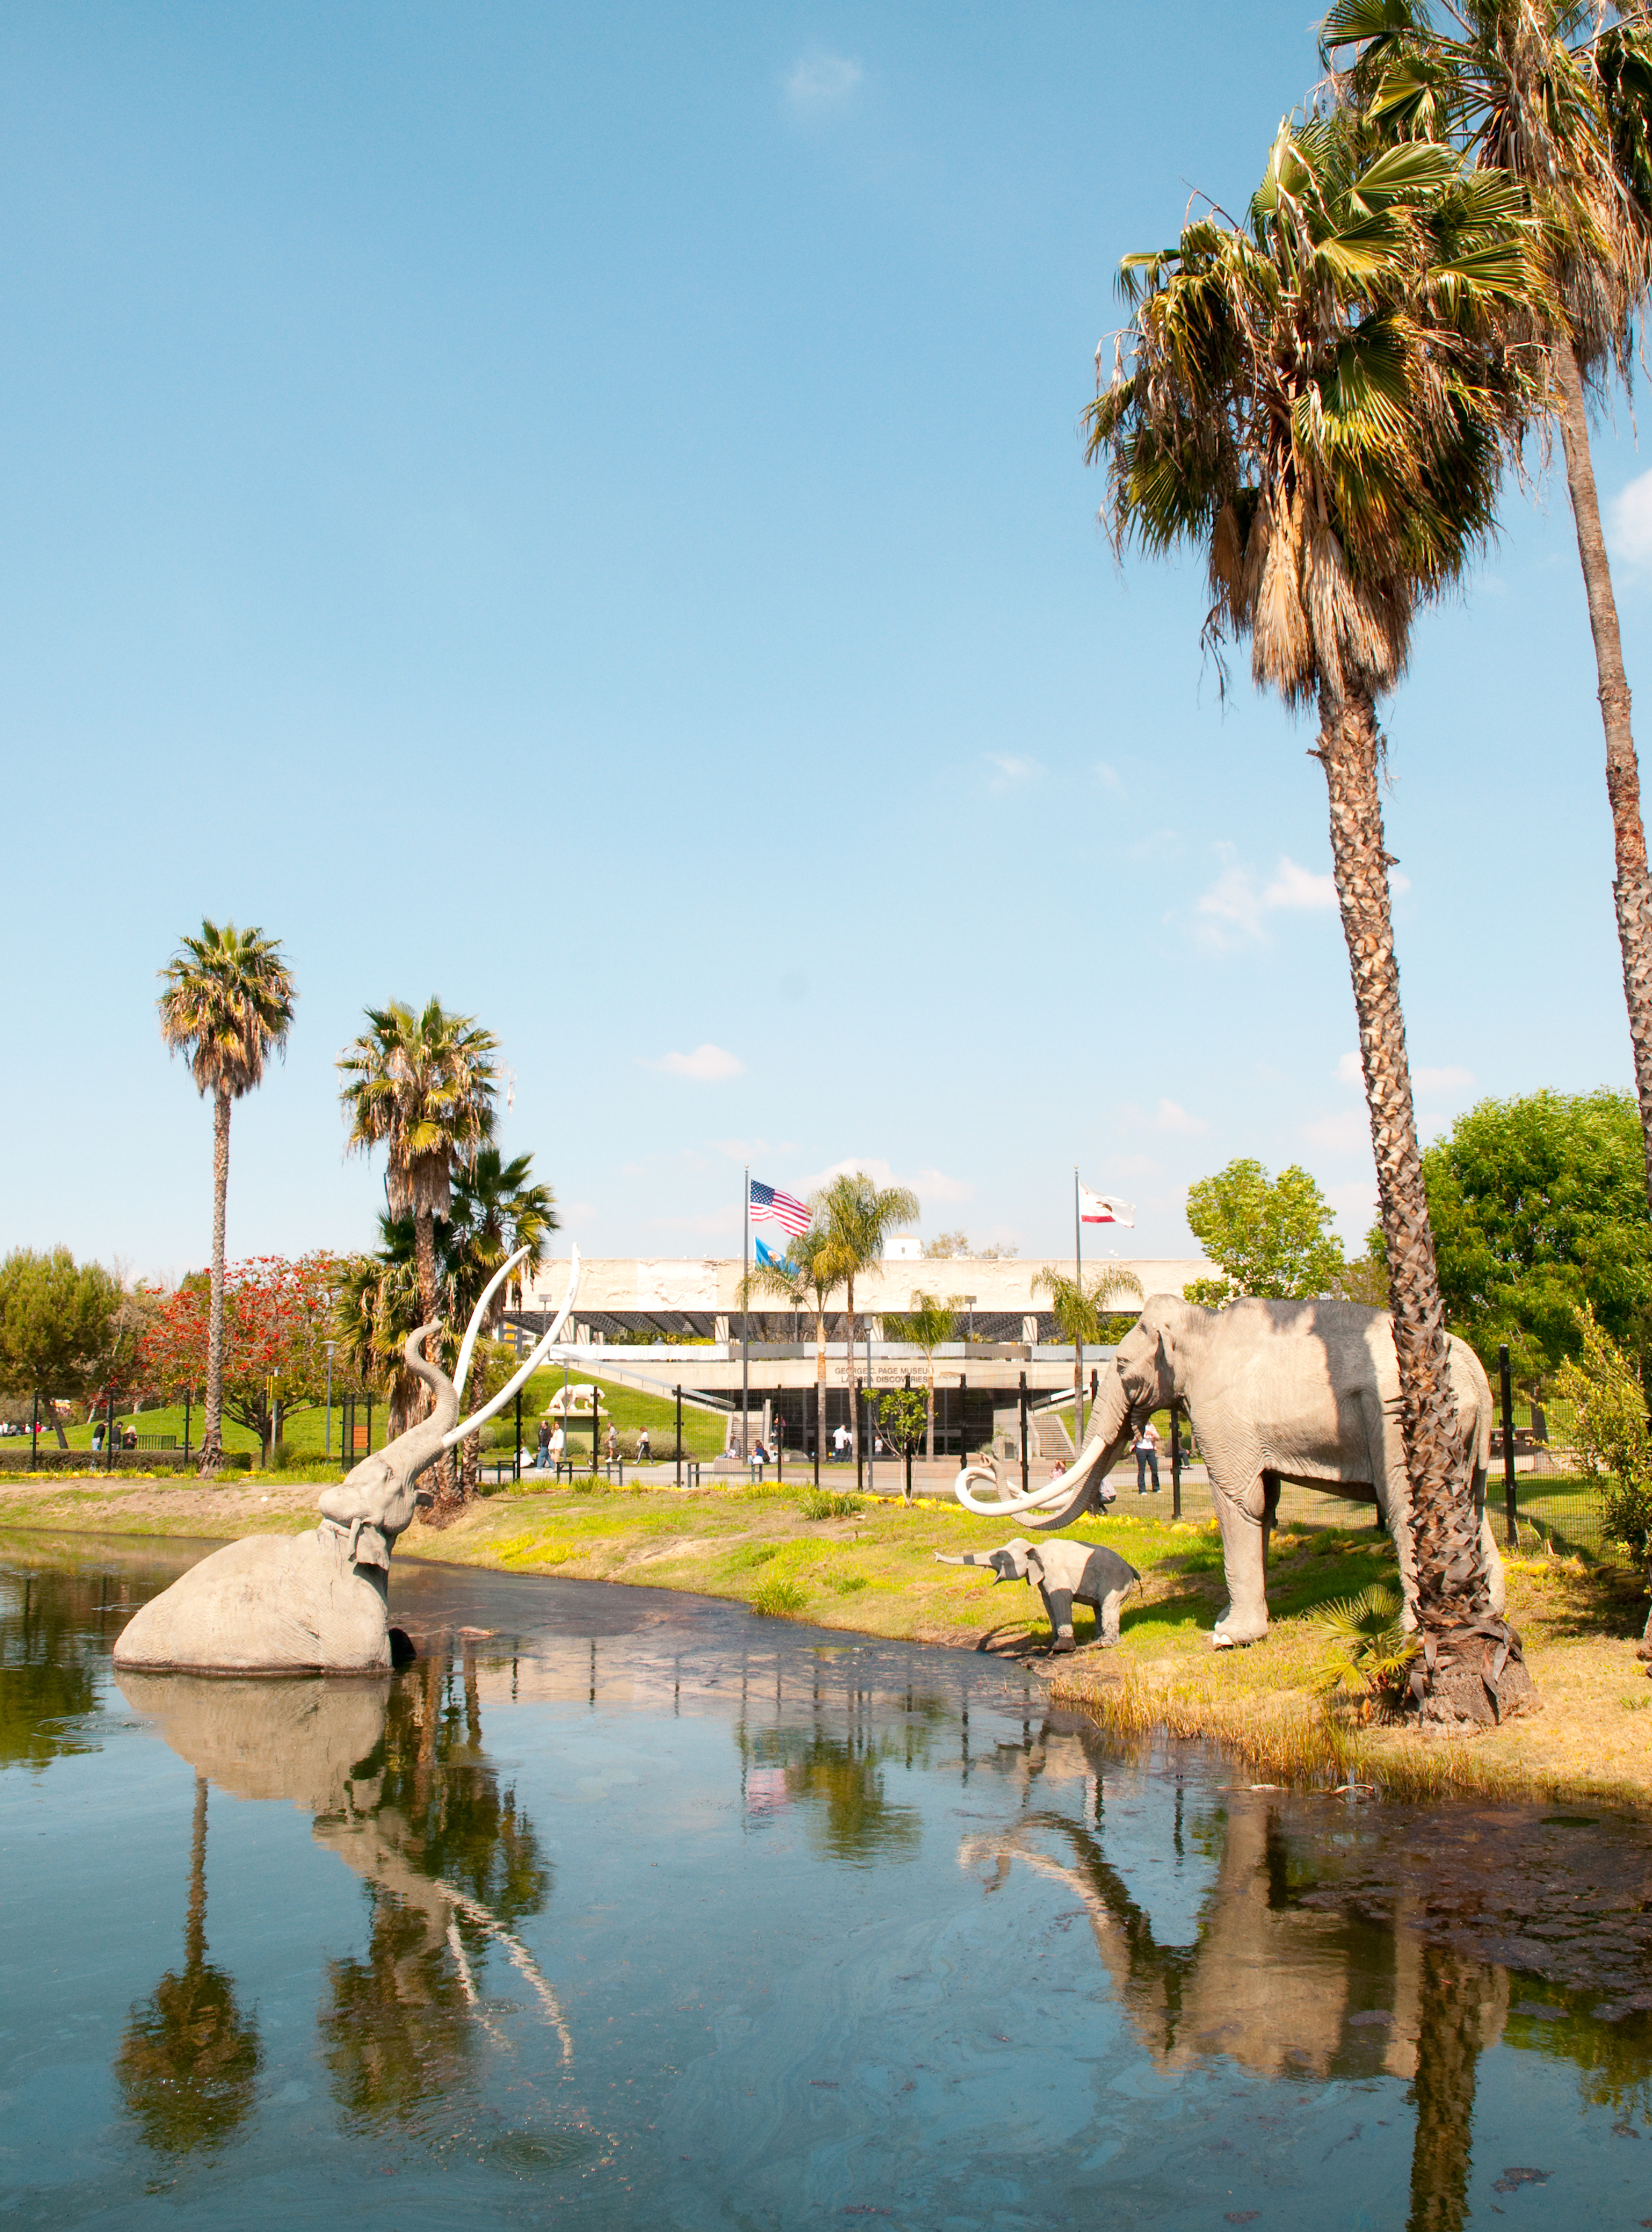 Three wooly mammoth statues in and around a lake surrounded by grass and palm trees on a sunny day.